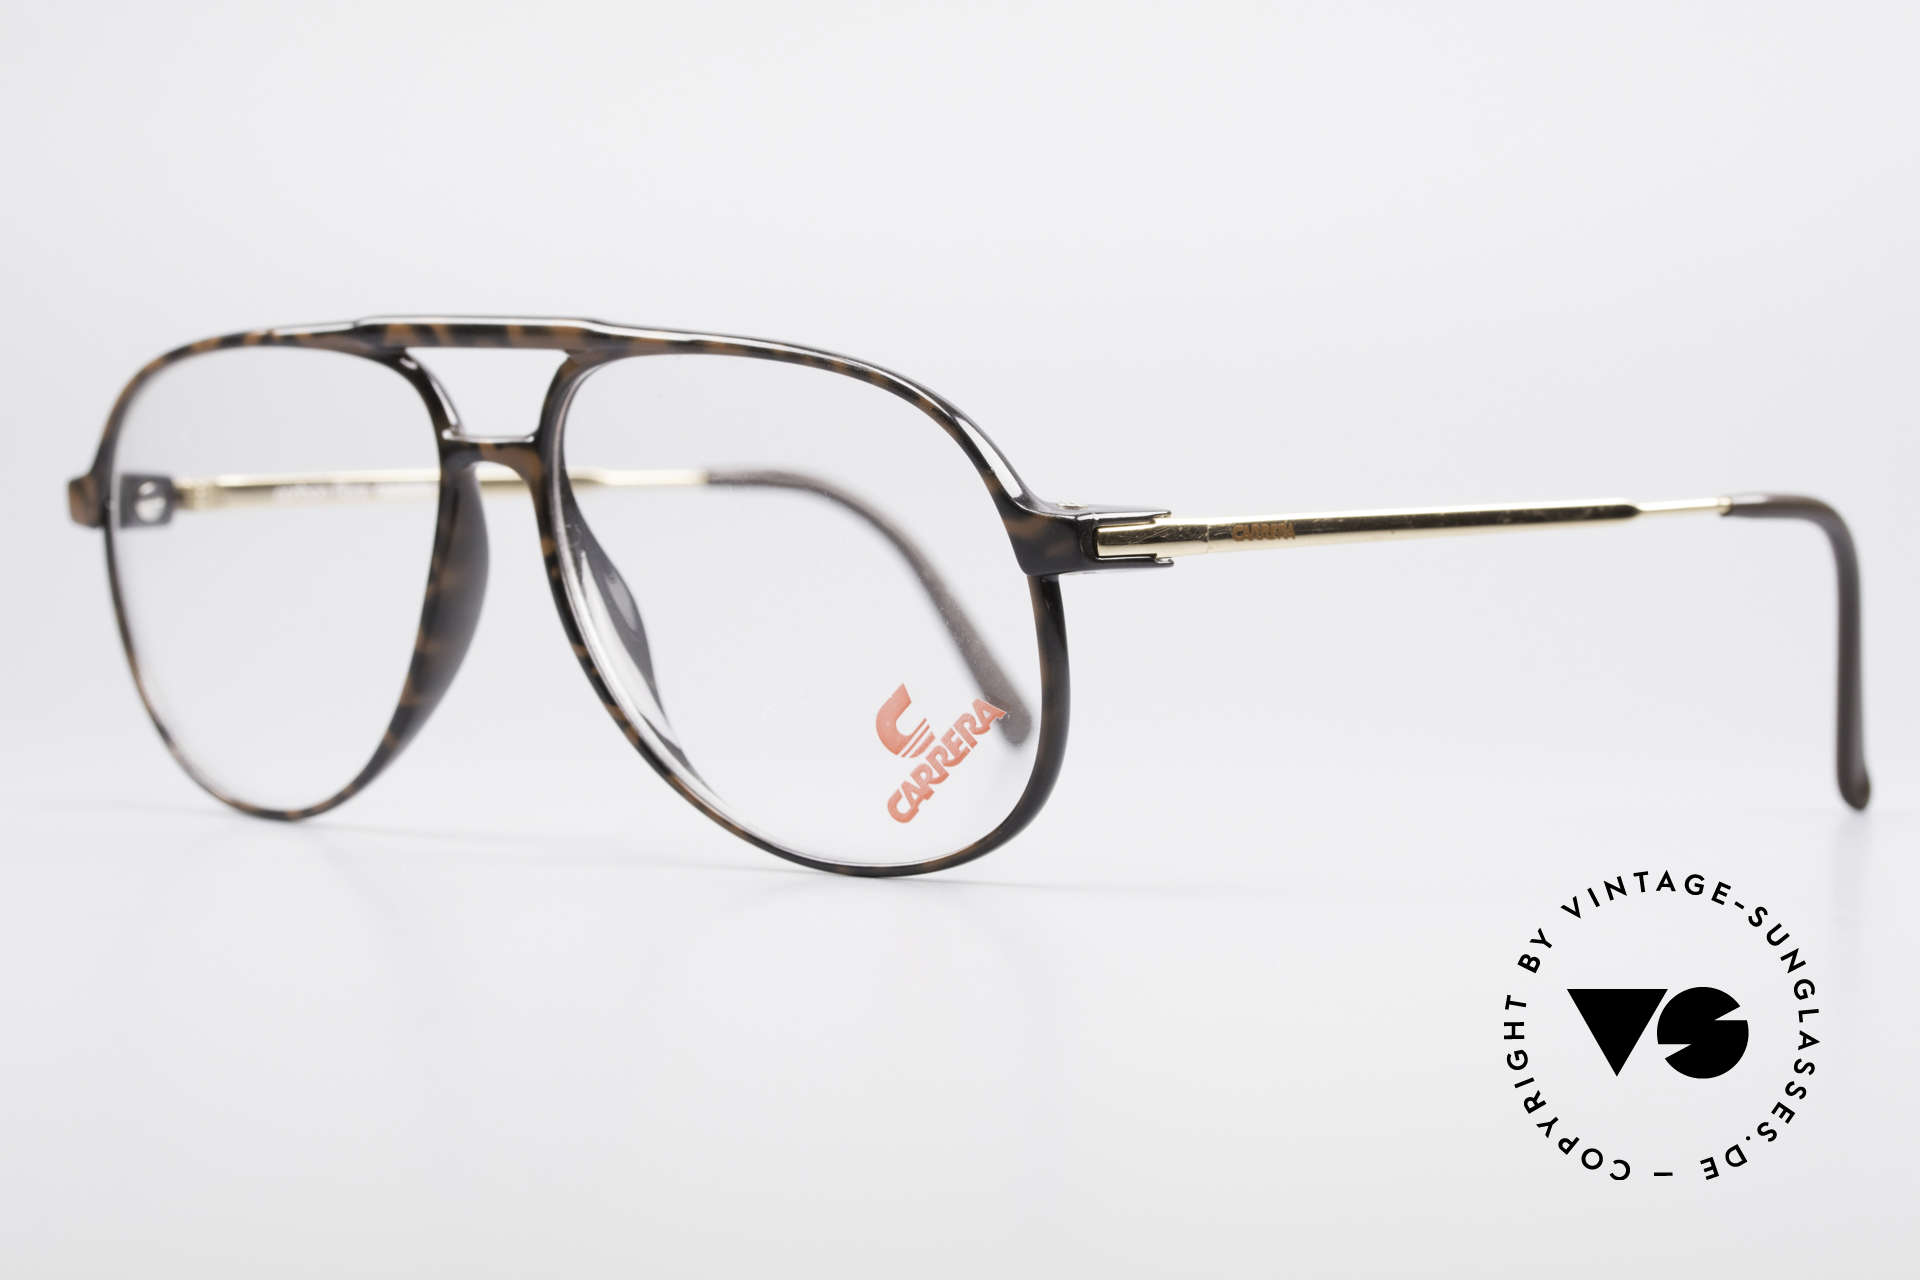 Carrera 5355 Carbon Fibre Vintage Frame, accordingly extremely comfortable to wear, TOP!, Made for Men